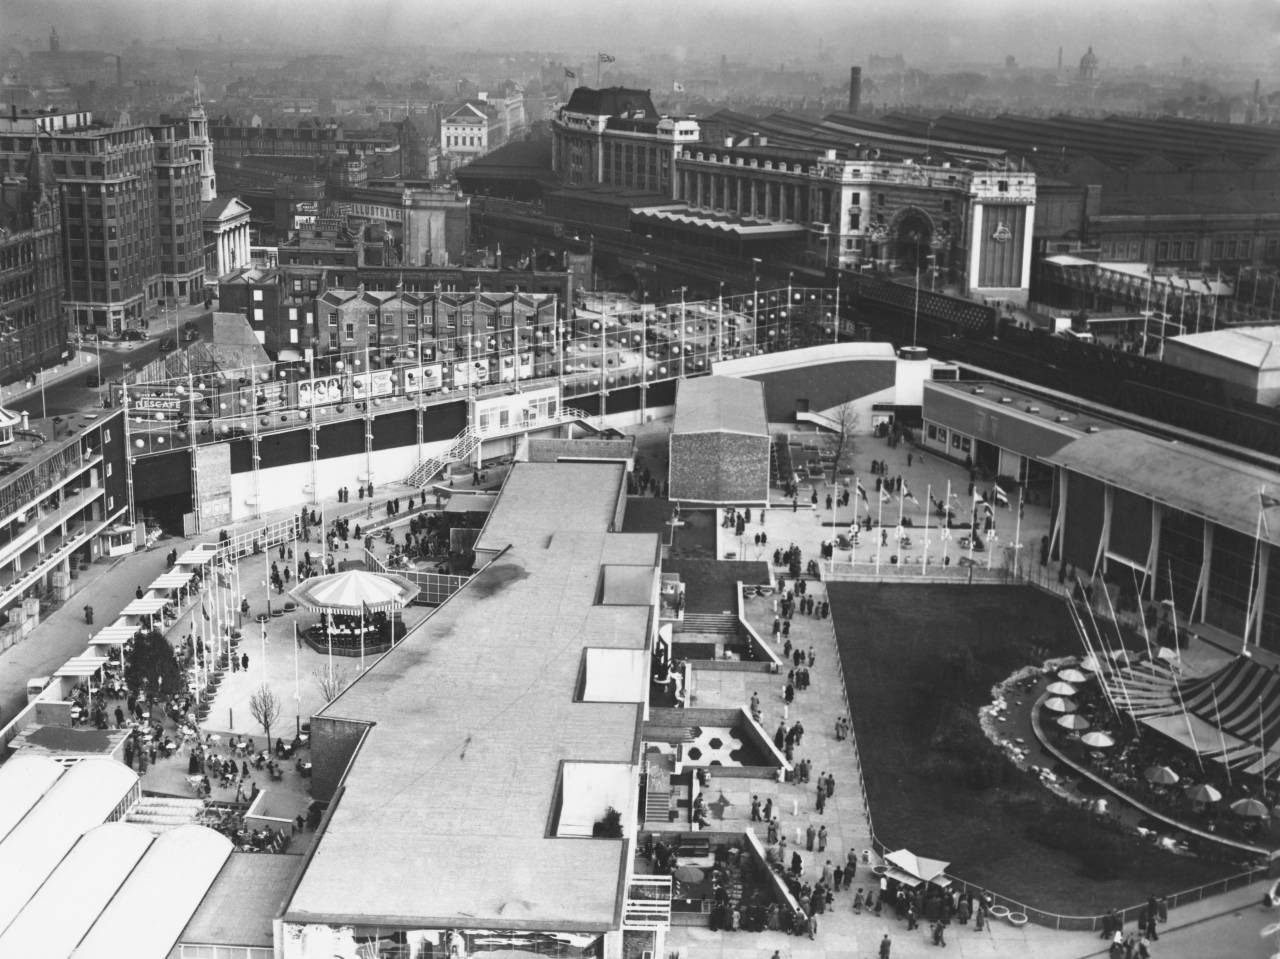 A view over the Festival of Britain site, looking south towards Waterloo Station from the Shot Tower on the South Bank, London, May 1951. (Photo by Daily Express/Hulton Archive/Getty Images)